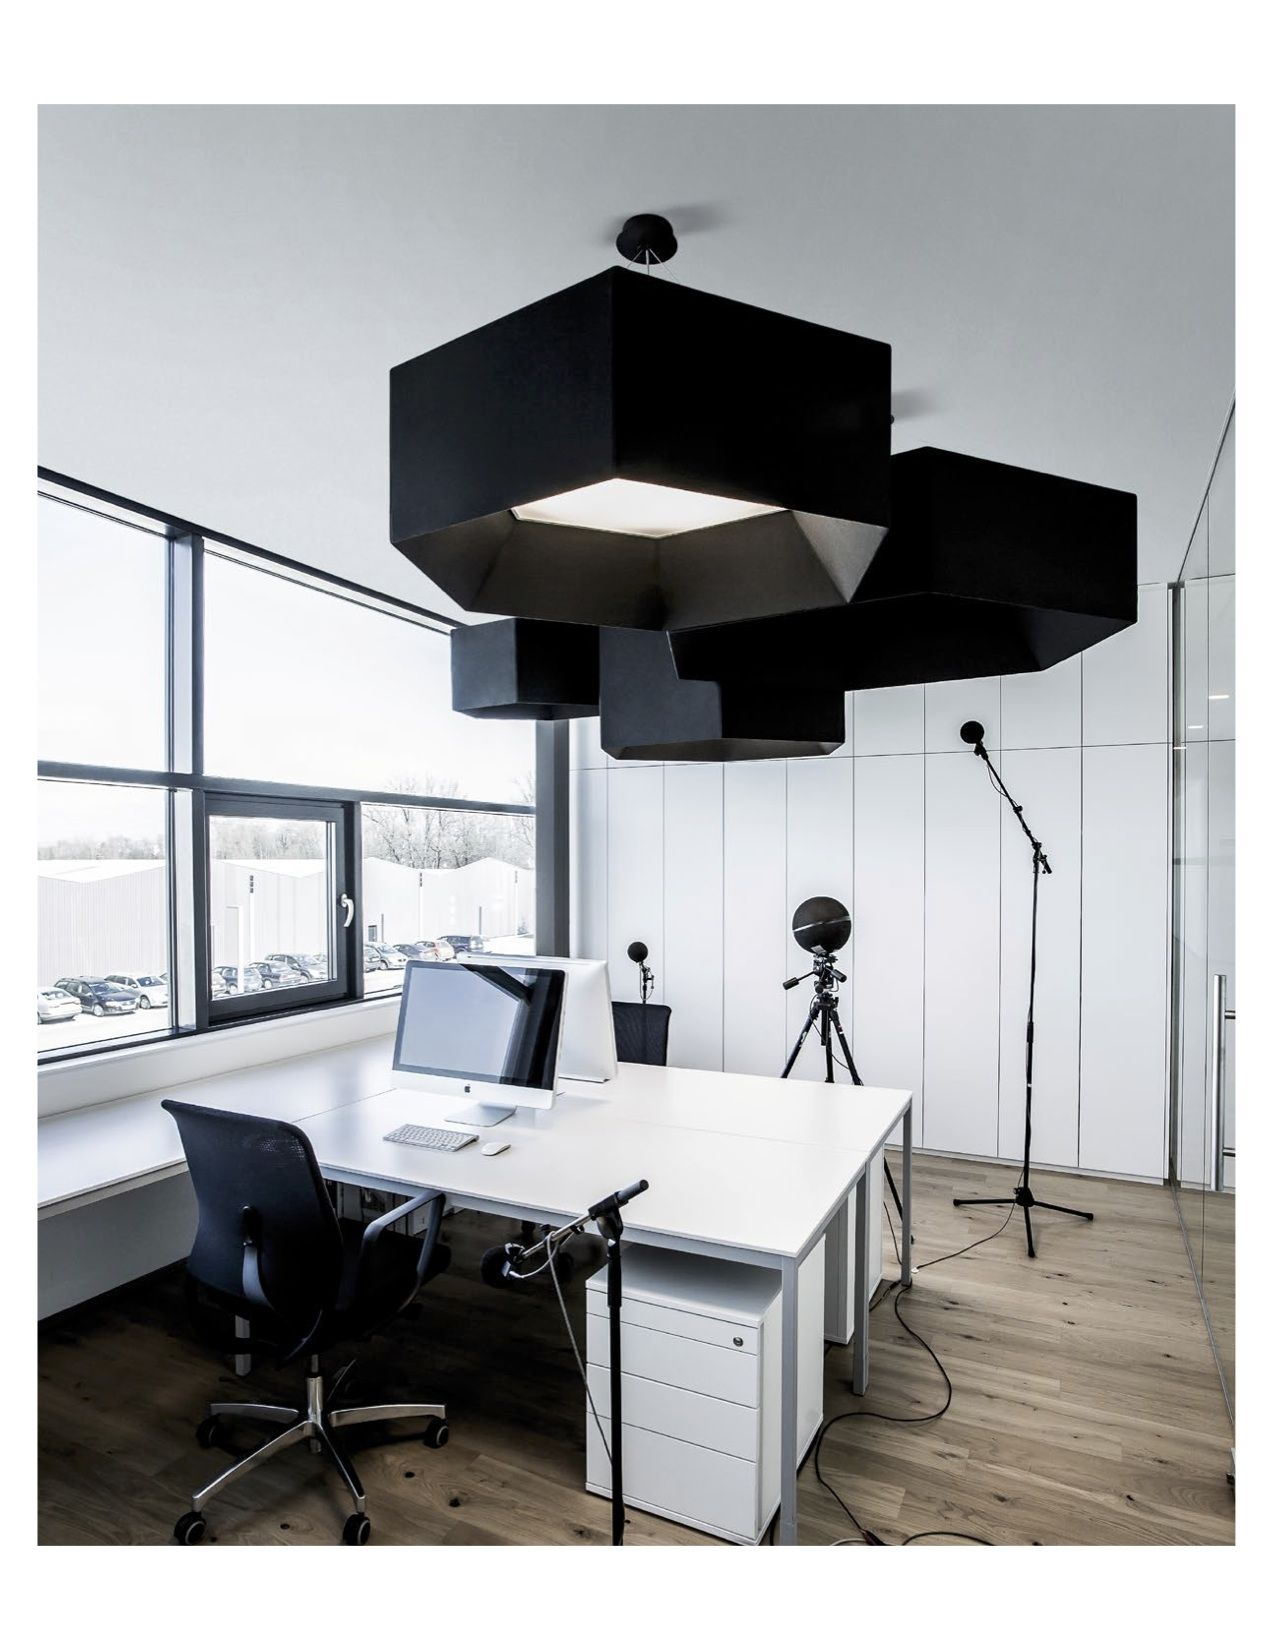 Xal hex o the latest from xenon architectural lighting that was xal hex o the latest from xenon architectural lighting that was displayed in germany last week this led pendant fixture is putting a hex on the standard arubaitofo Gallery